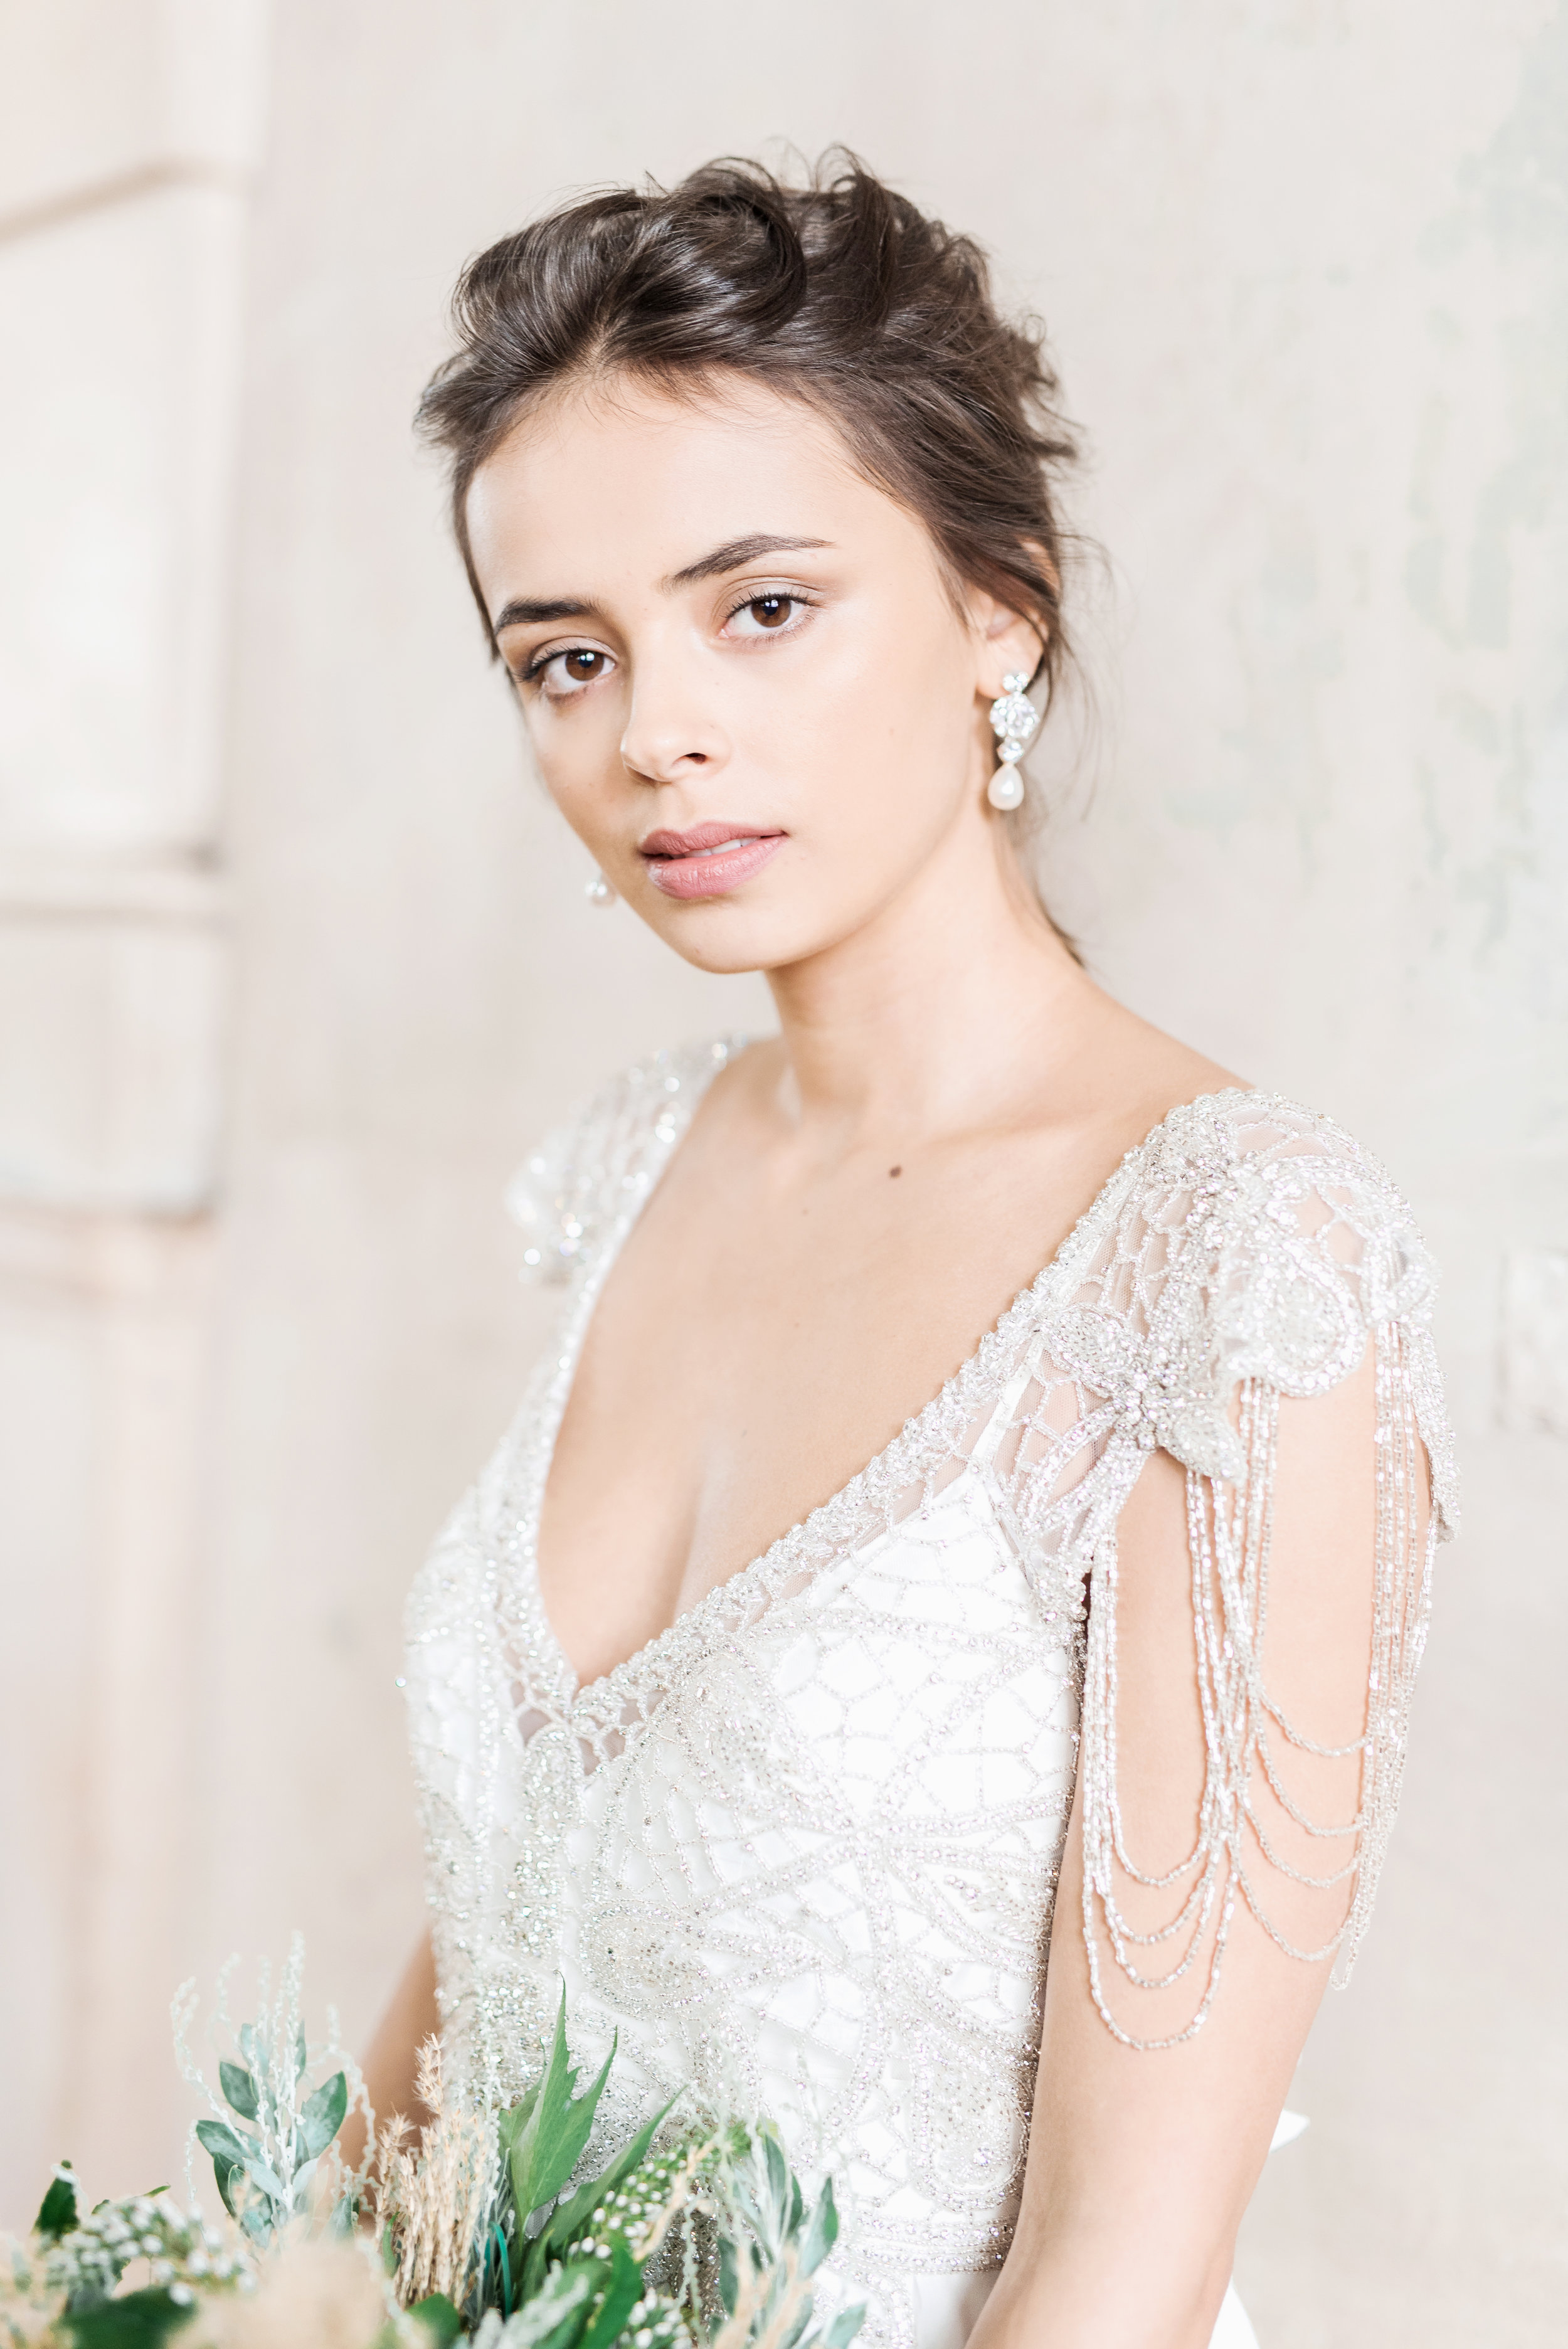 Grace Dress - Delicate hand-beaded shoulder detailing, an elegant low back and a shimmering silver hand-embellishment, the vintage-inspired Grace epitomizes whimsical and glamourous Anna Campbell...Styled with the Charlotte Chandelier Earrings